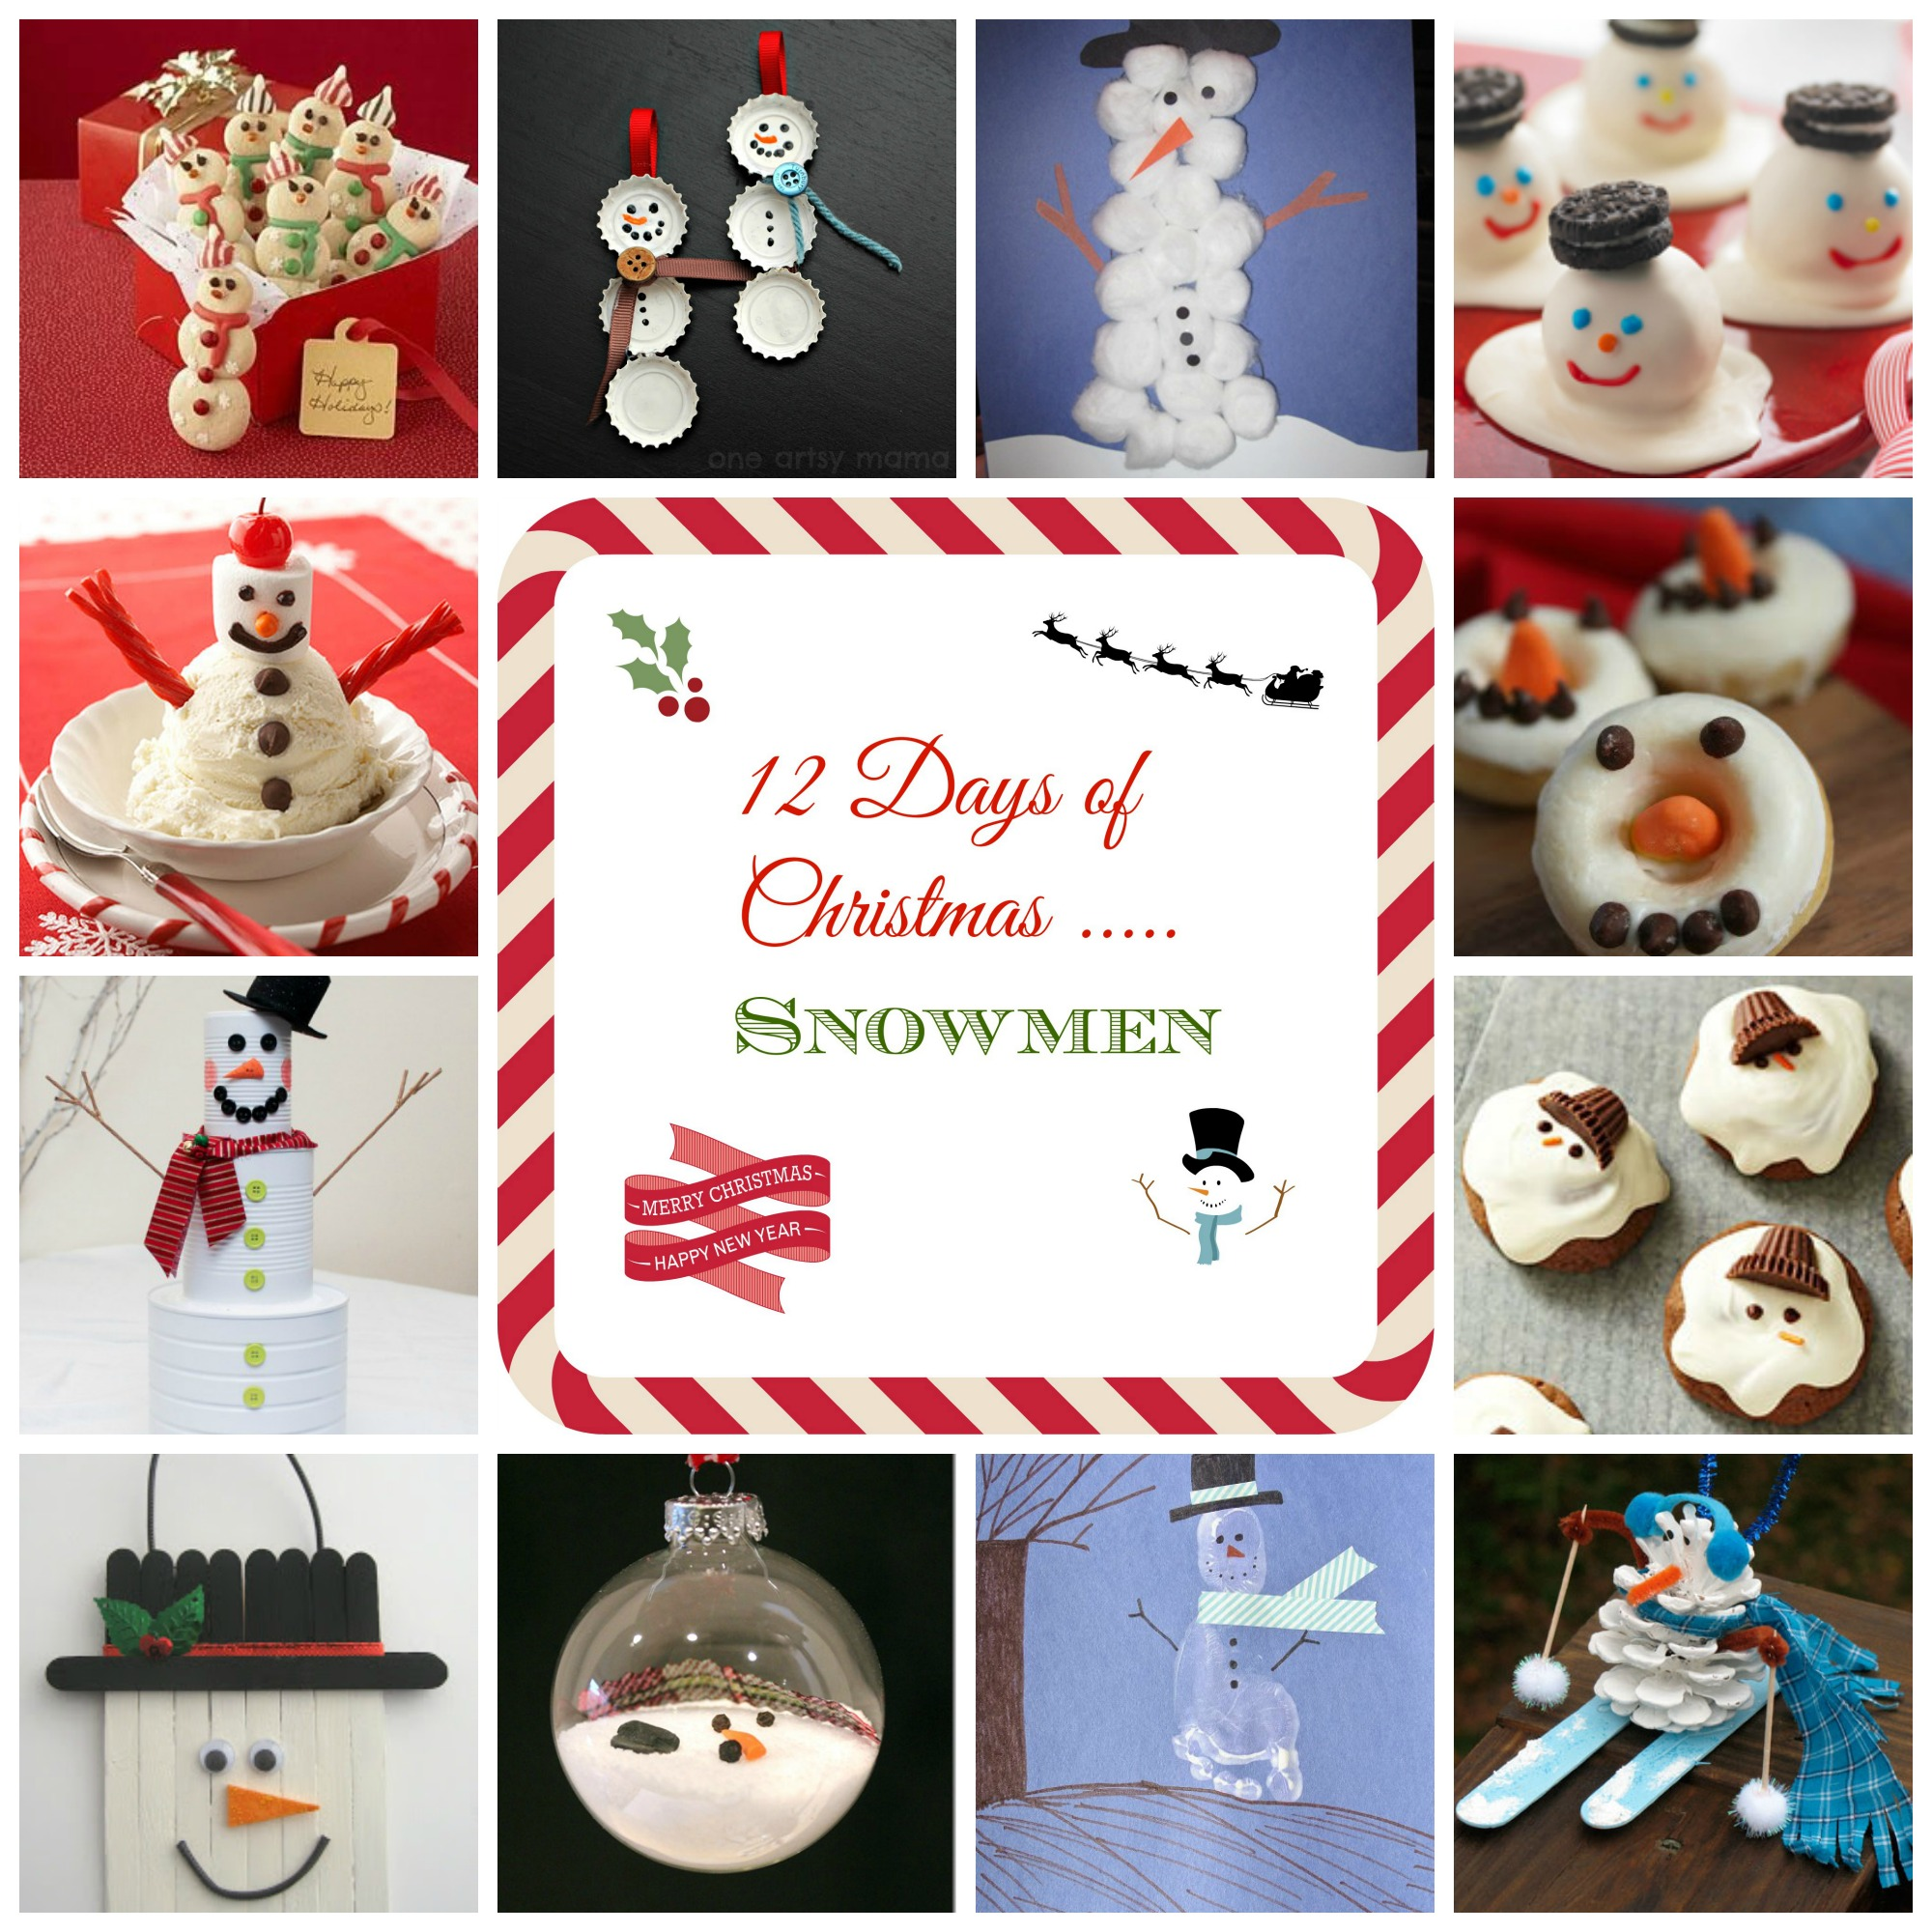 12 Days of Christmas – Snowmen